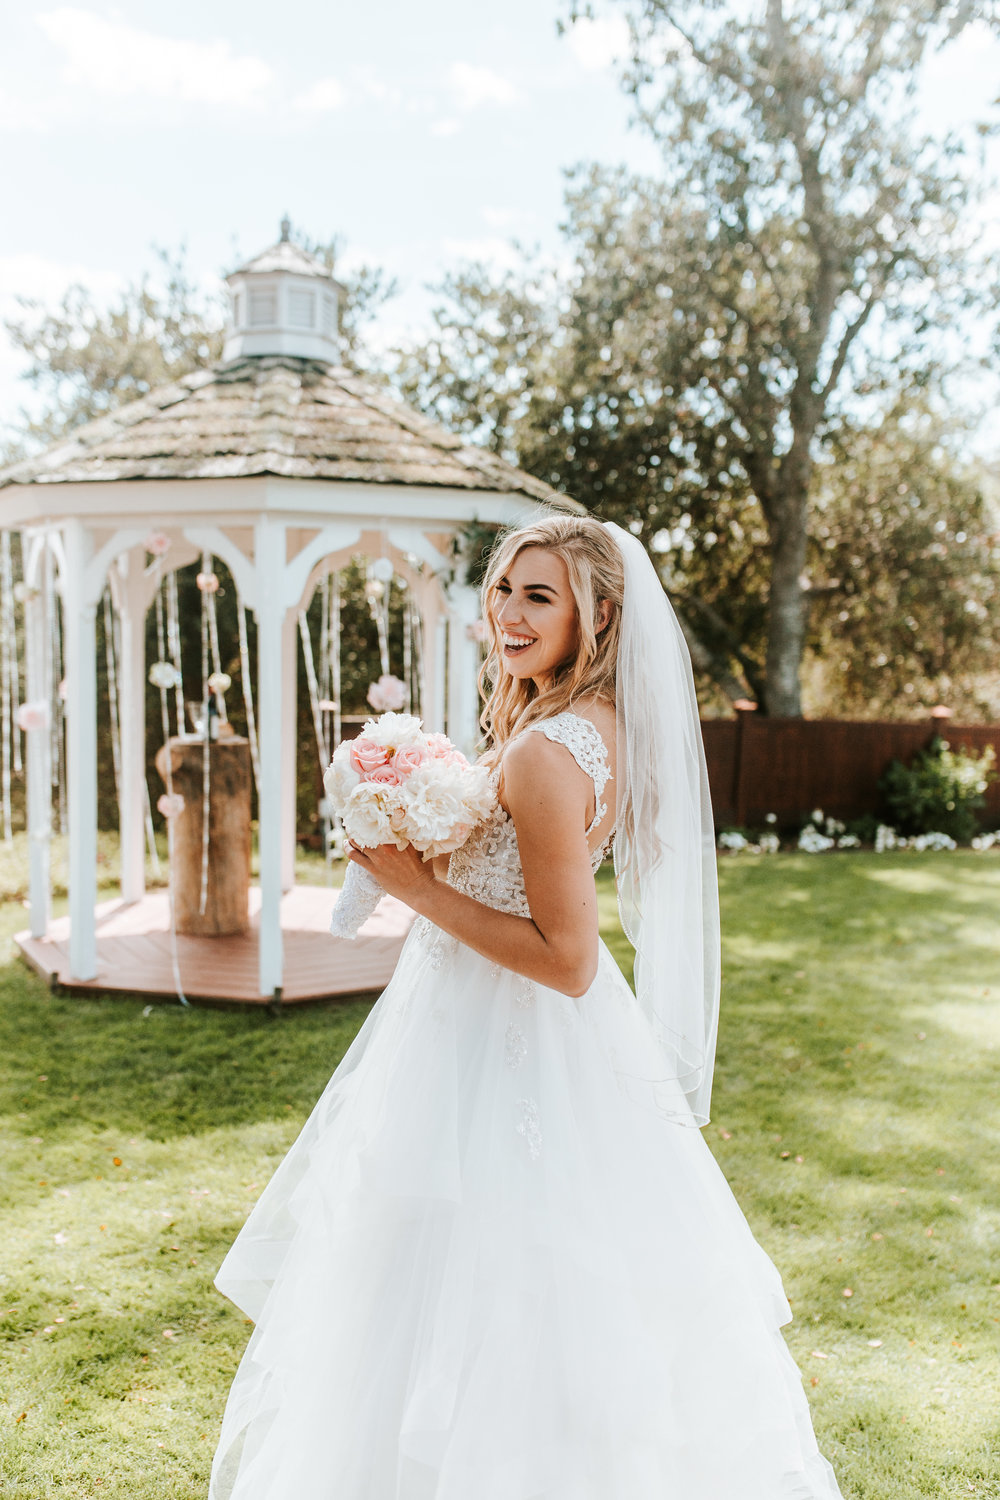 Clarisse-Rae-Southern-California-Wedding-Photographer-Bridal-Bouquet-Inspiration-2